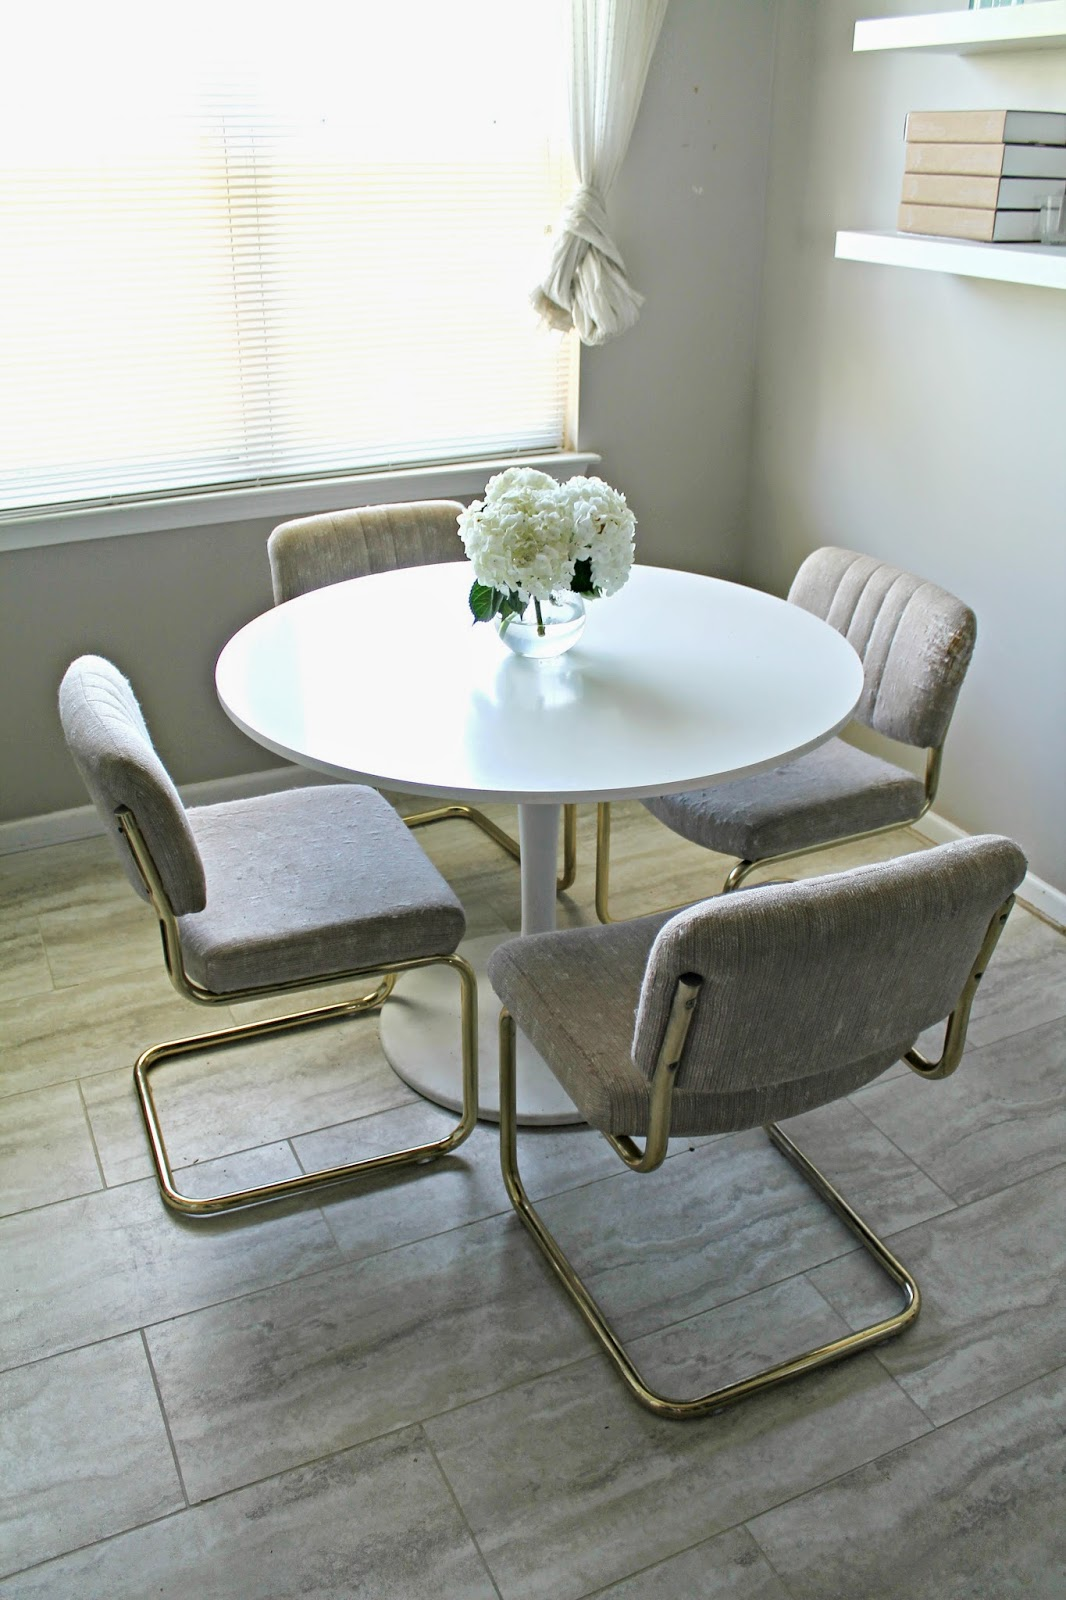 Craigslist Score Kitchen Table and Chairs   Shannon Claire